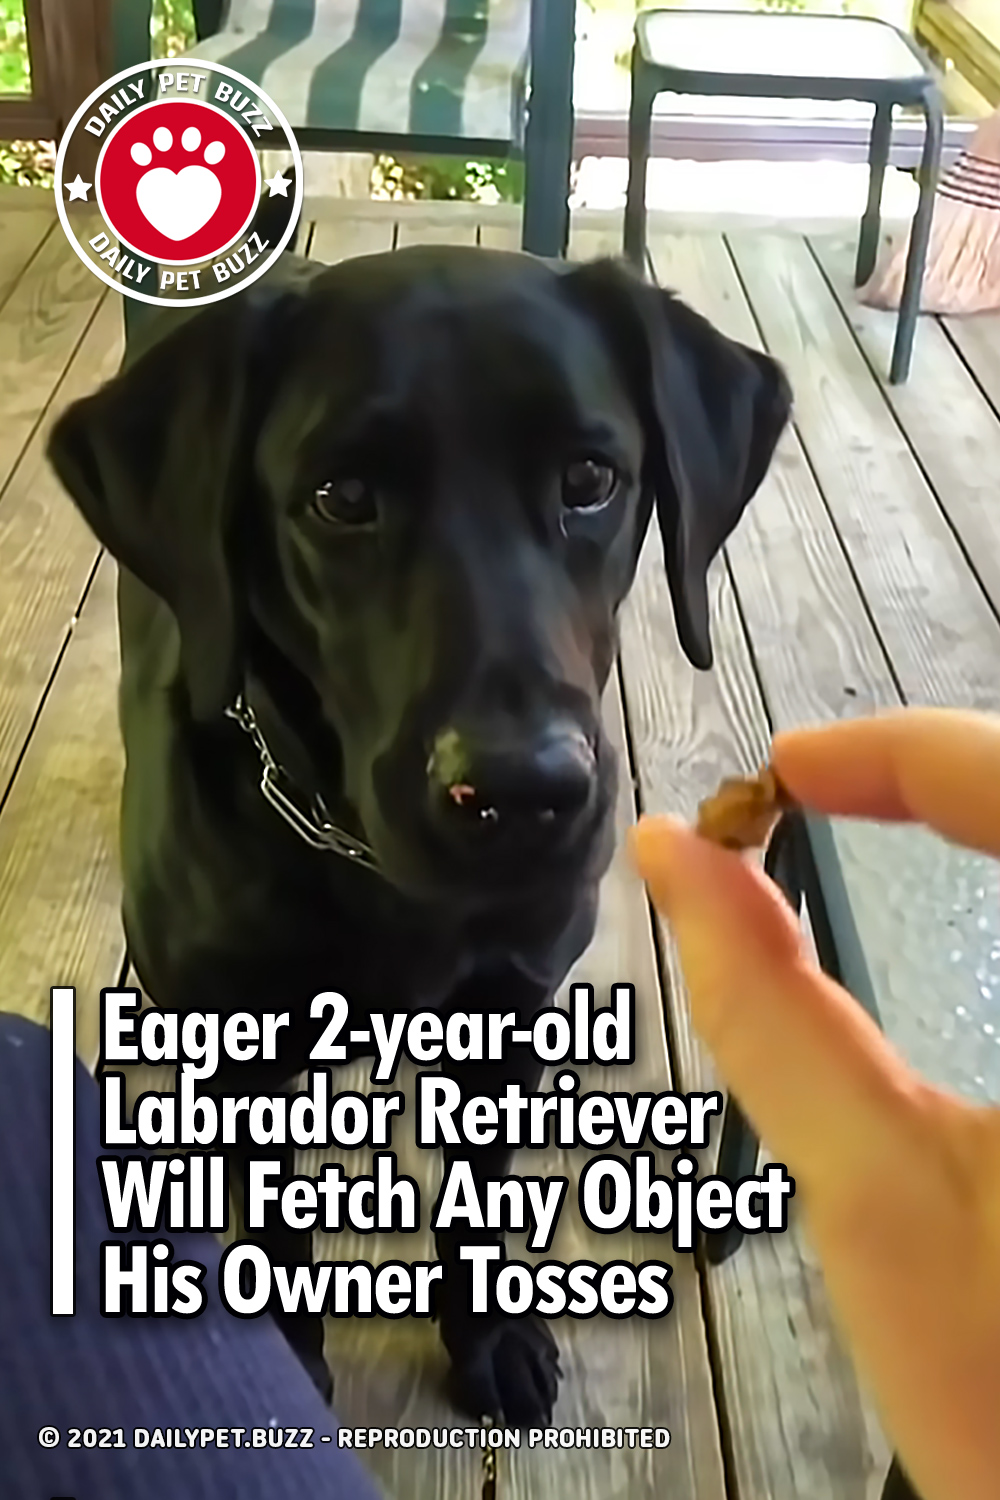 Eager 2-year-old Labrador Retriever Will Fetch Any Object His Owner Tosses